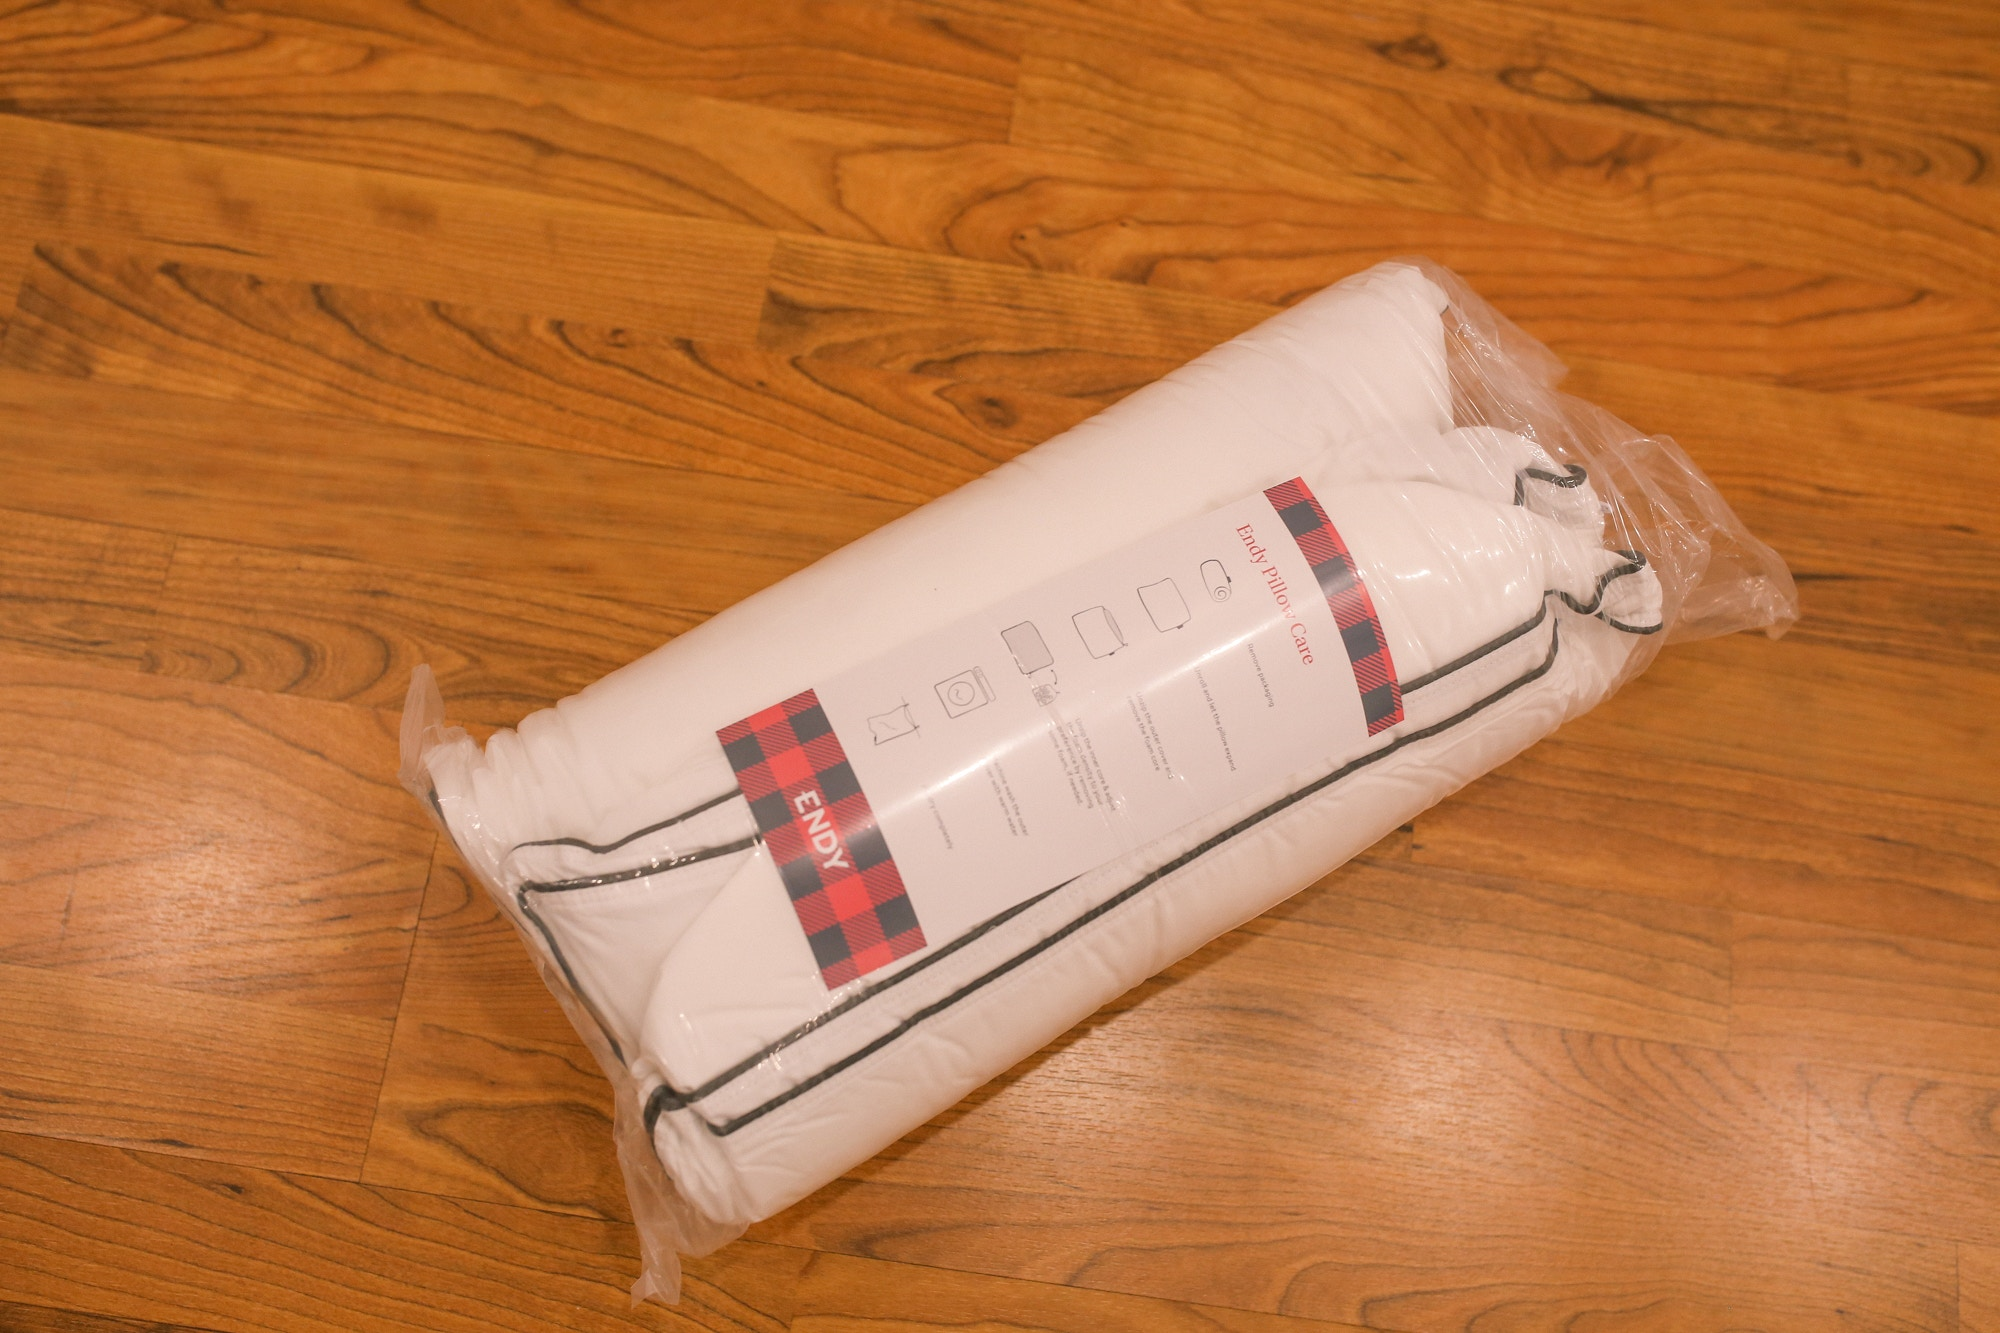 The Endy Pillow is adjustable and made of charcoal bamboo foam for comfort.